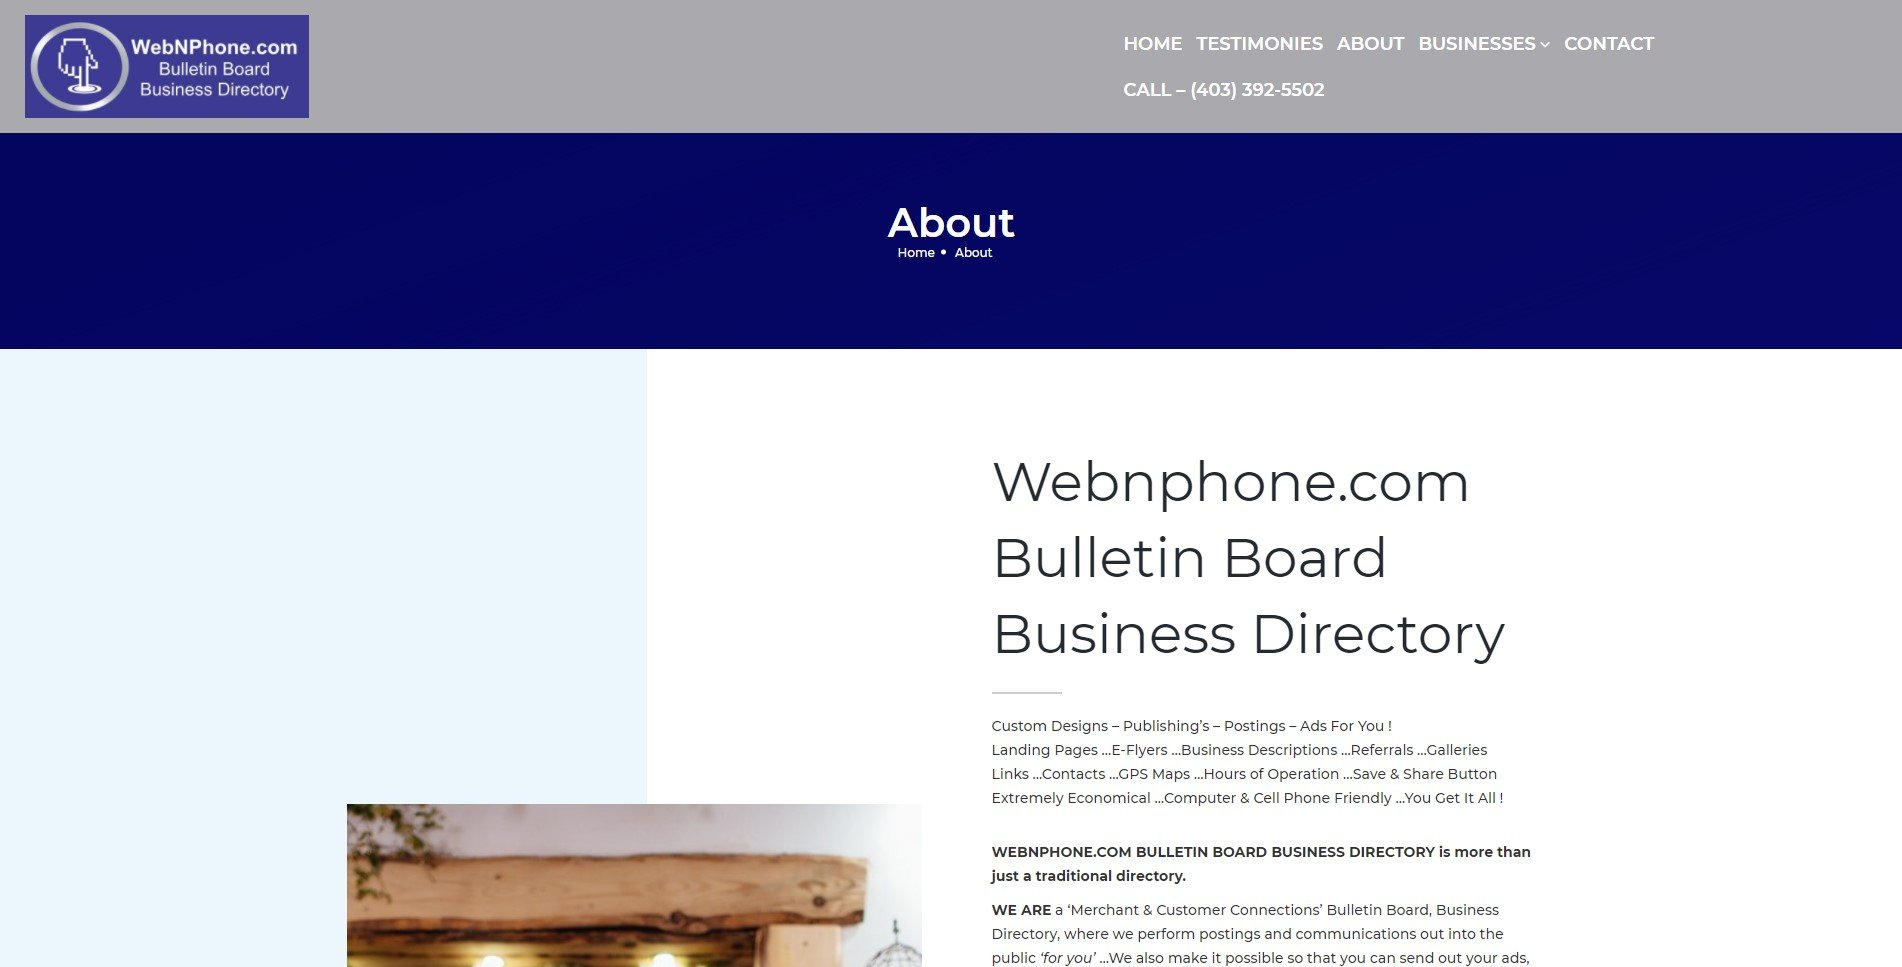 WebNPhone About Page